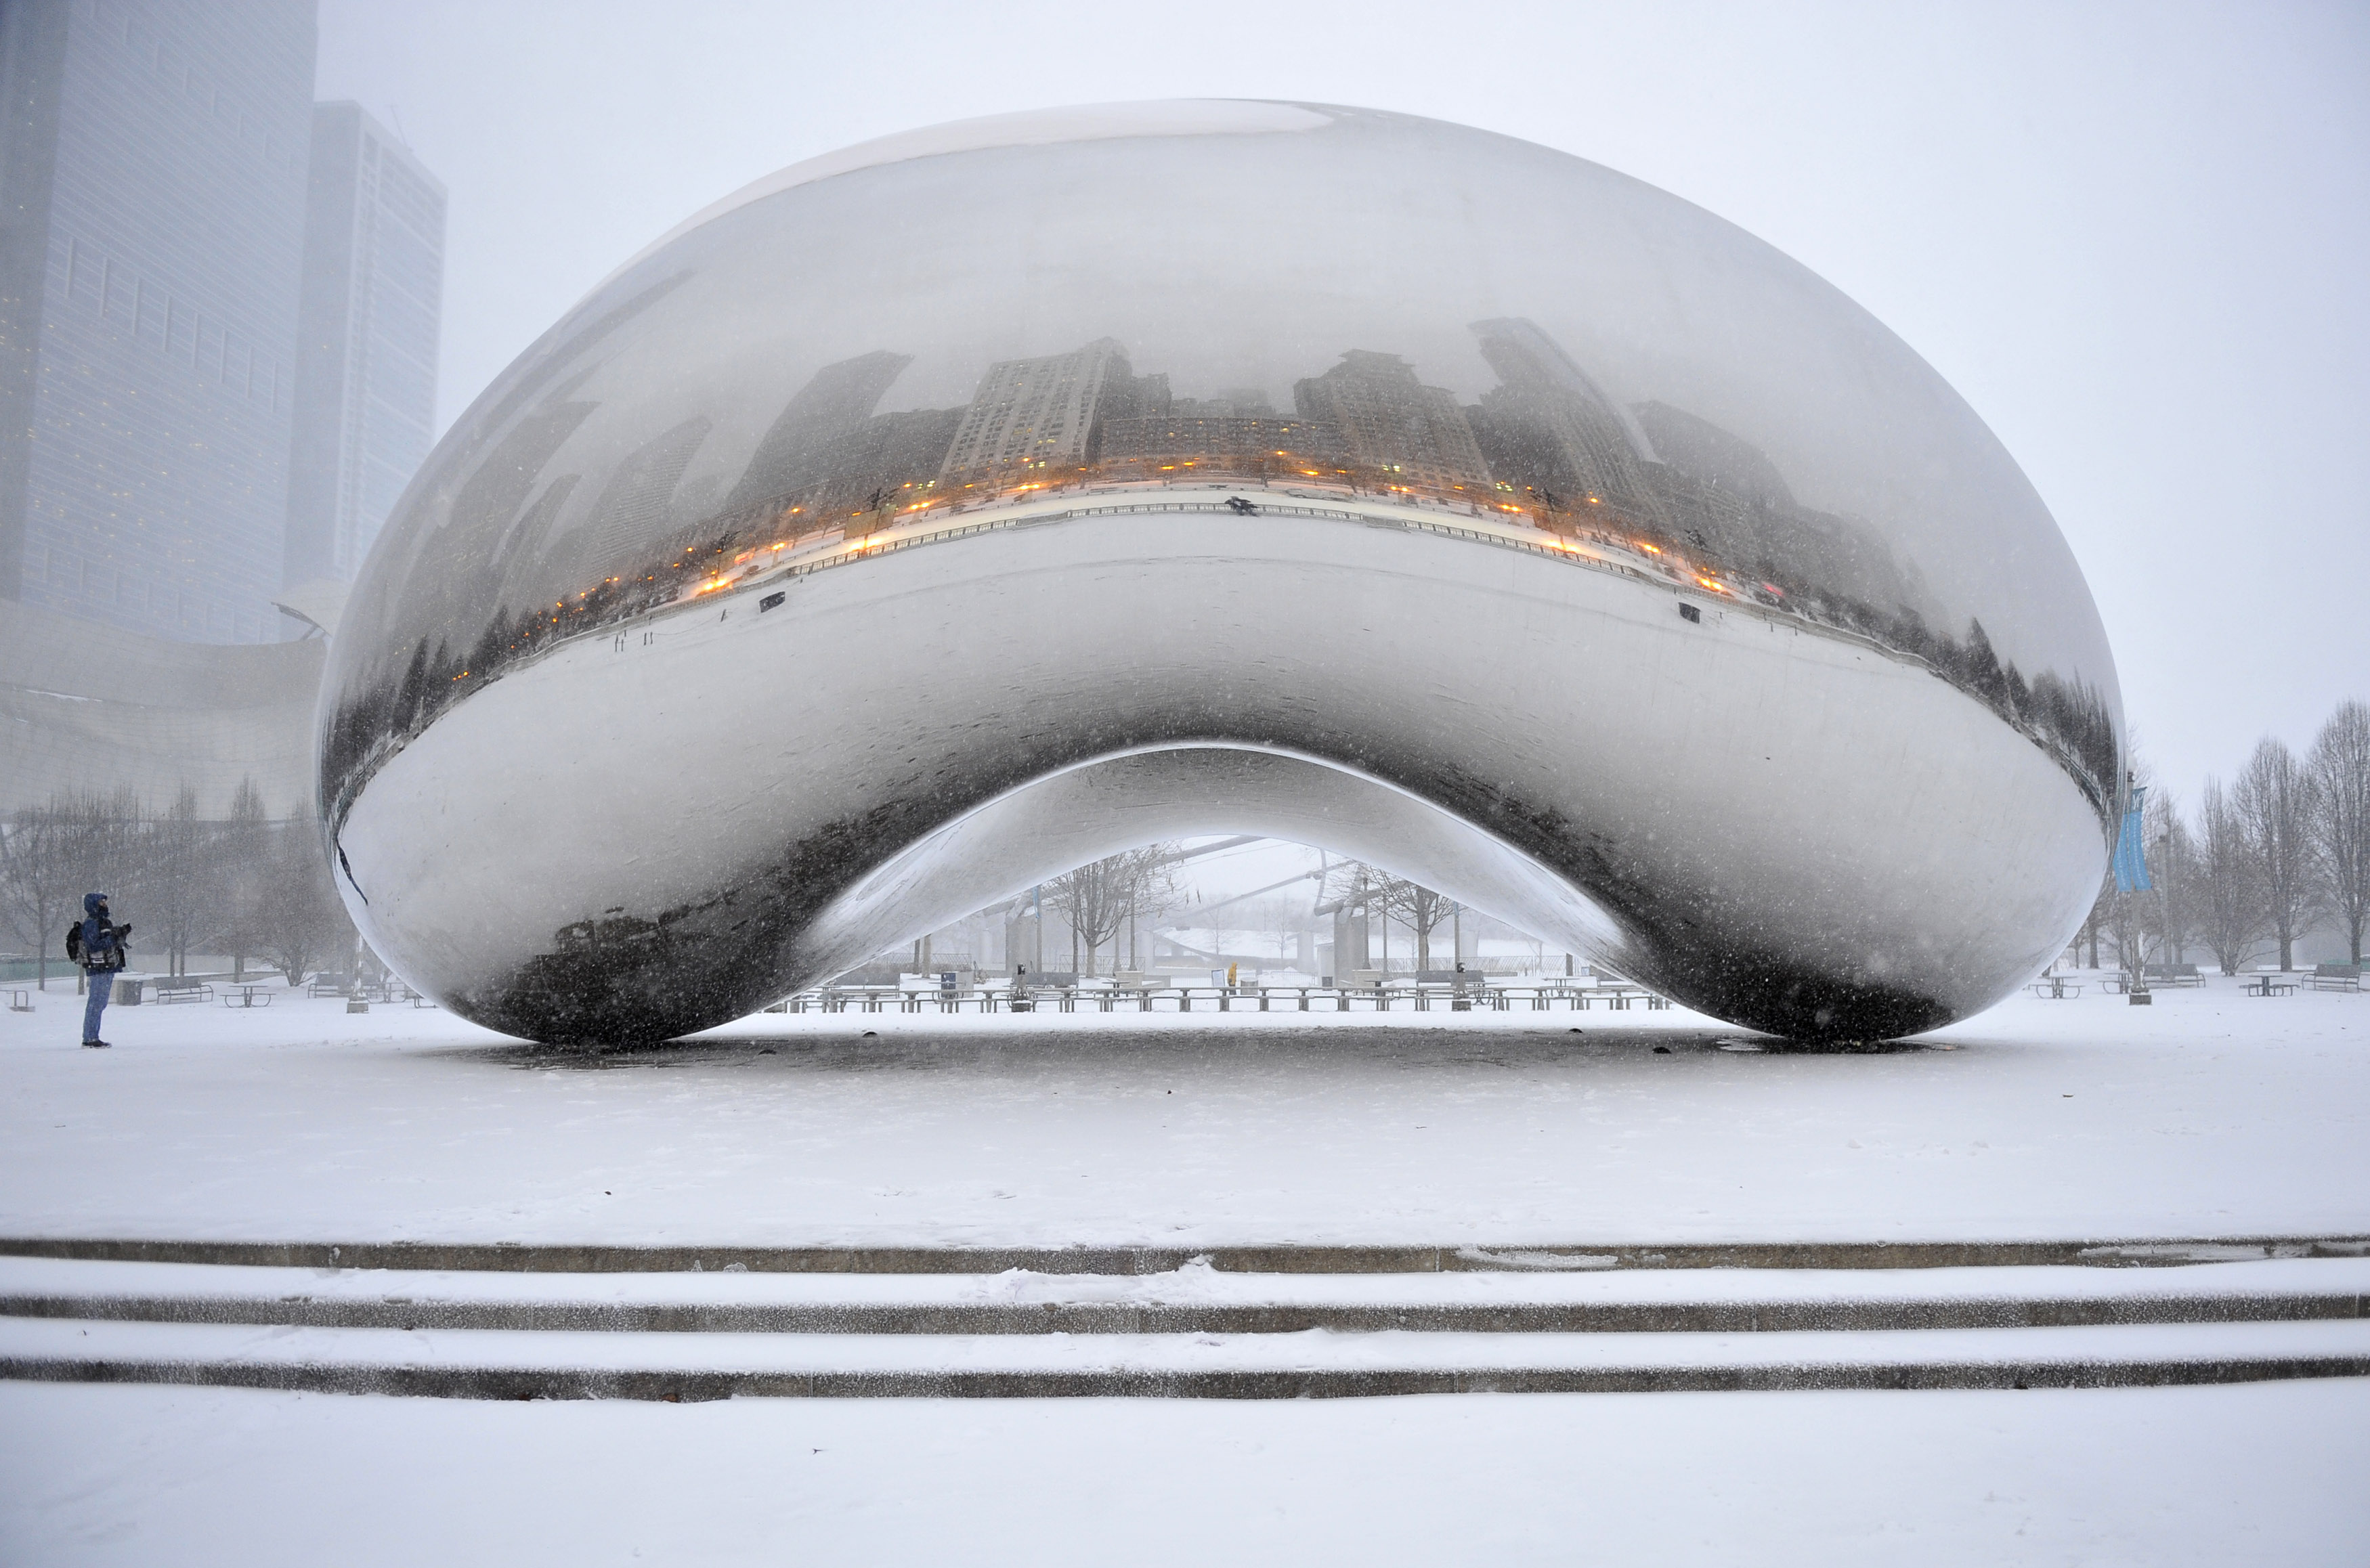 Cloud Gate reflects snow storm in Chicago